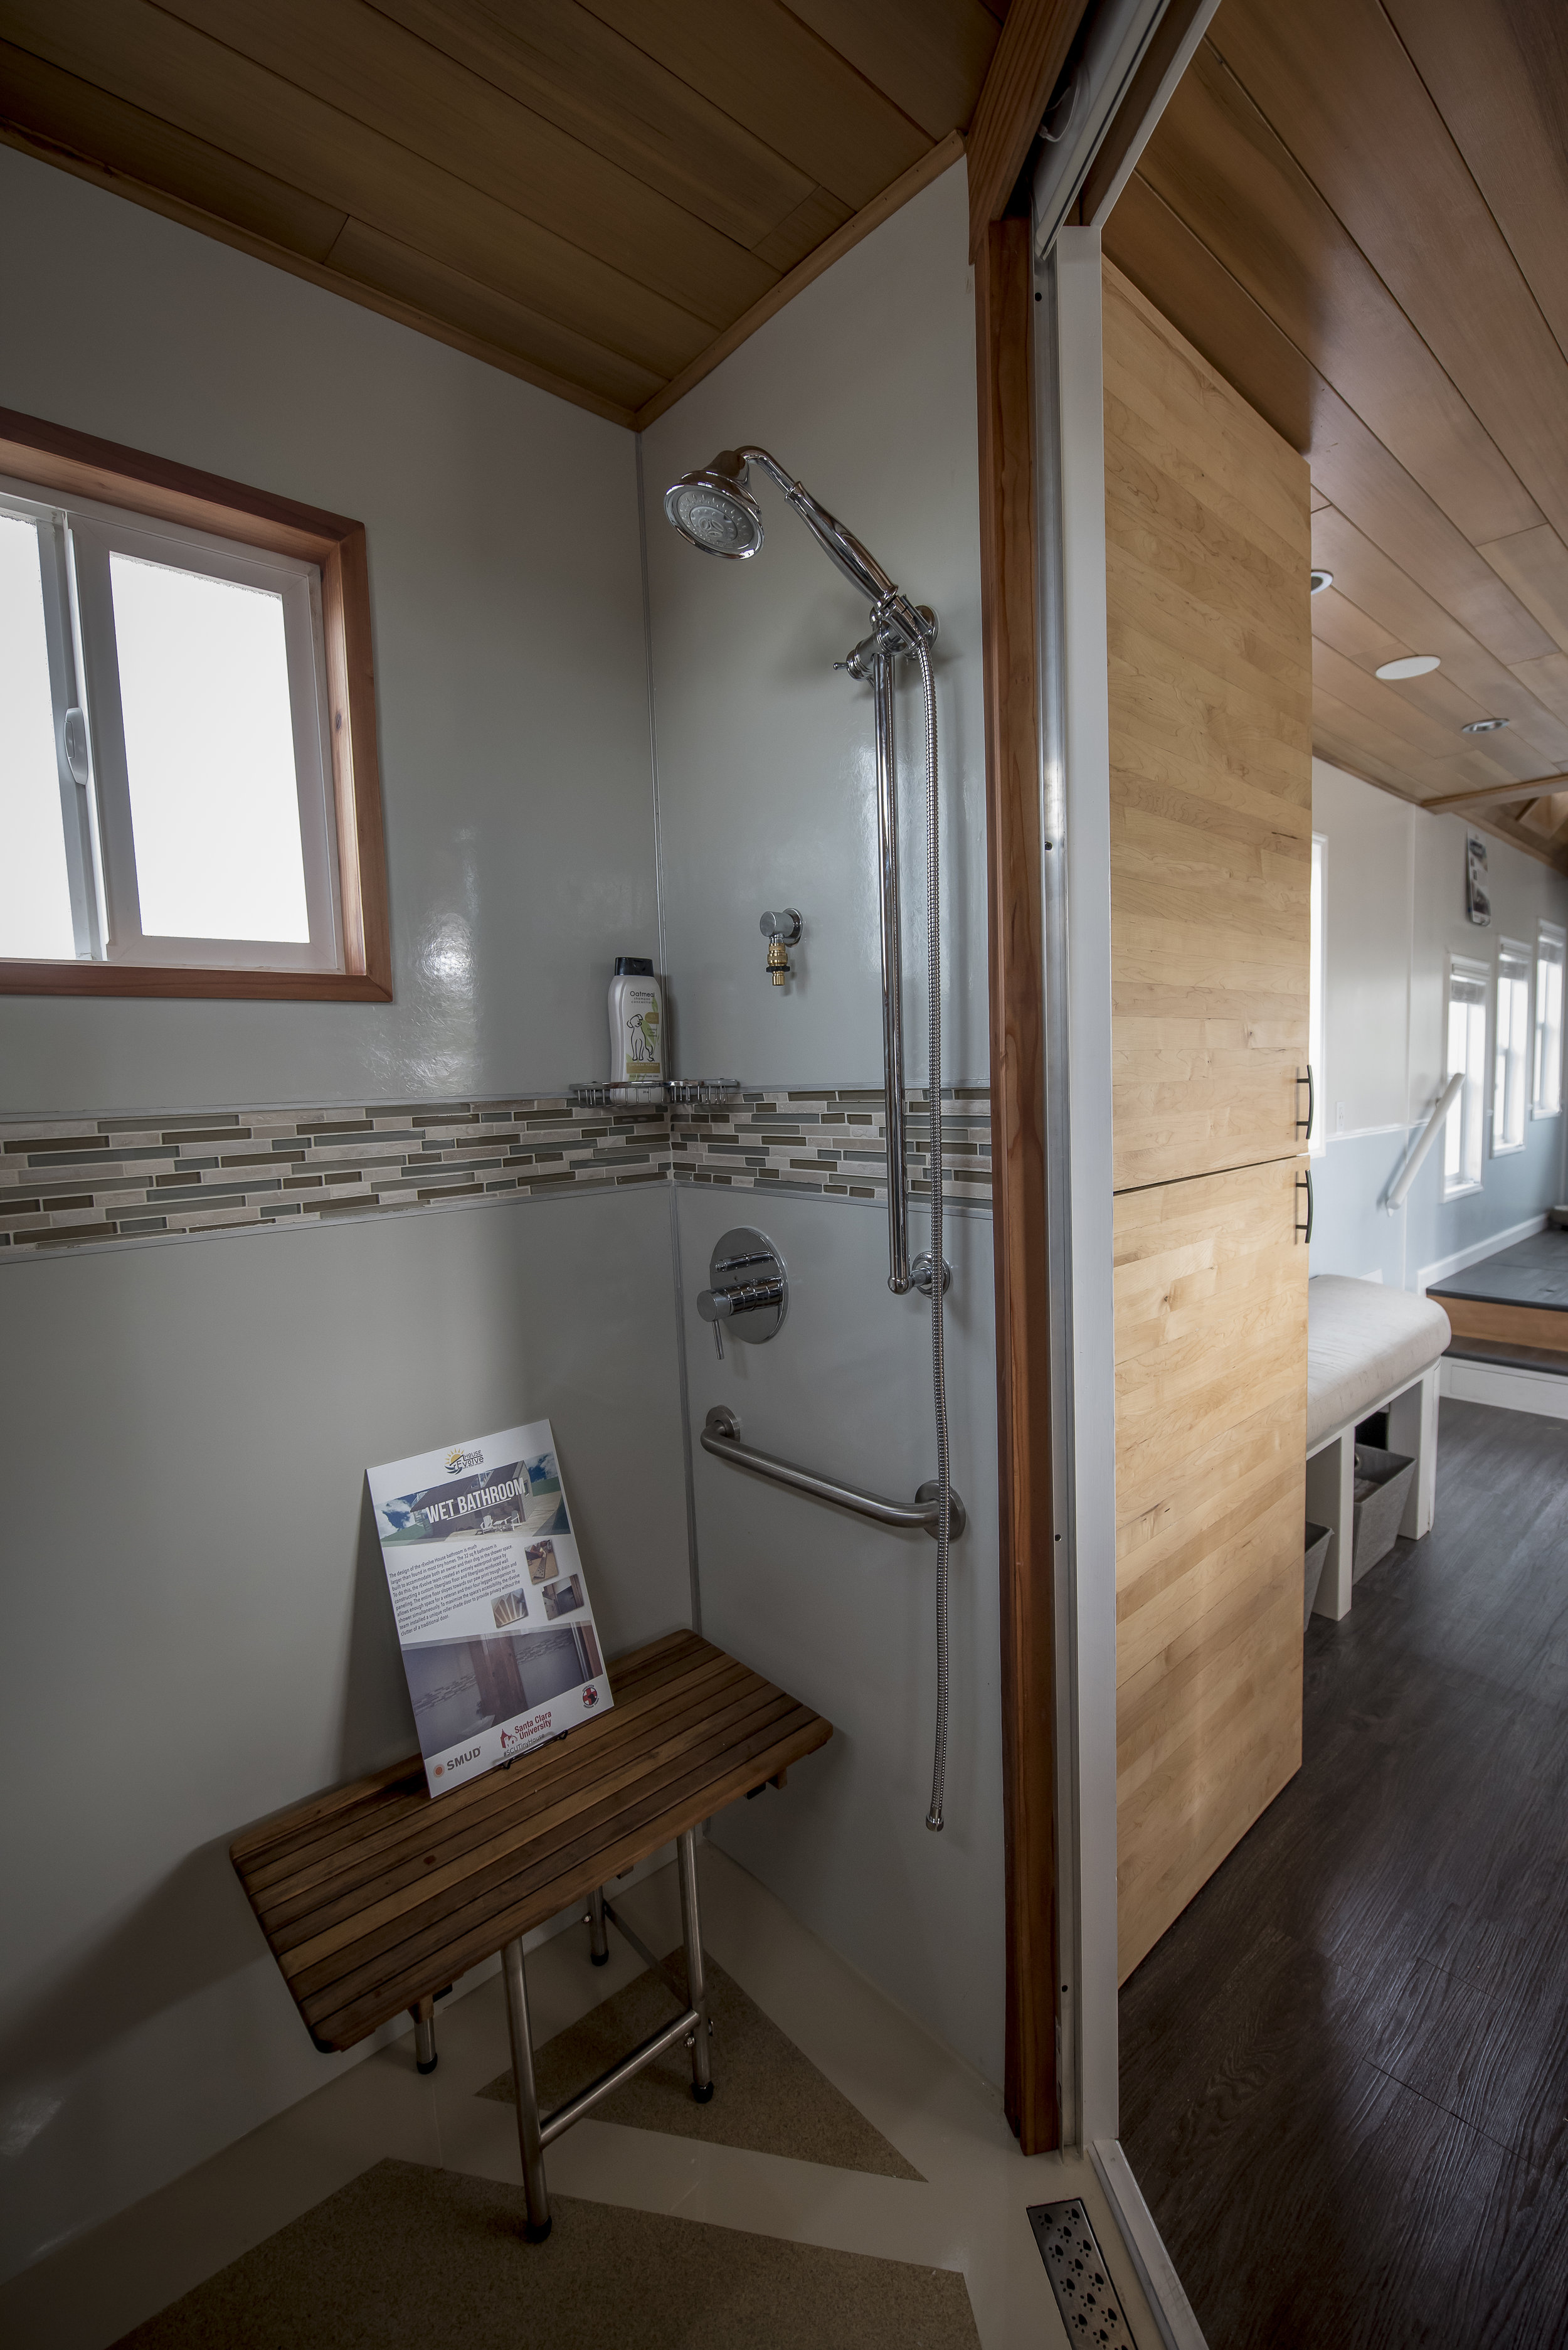 JL161013_4161_0223_TinyHouseCompetition.jpg